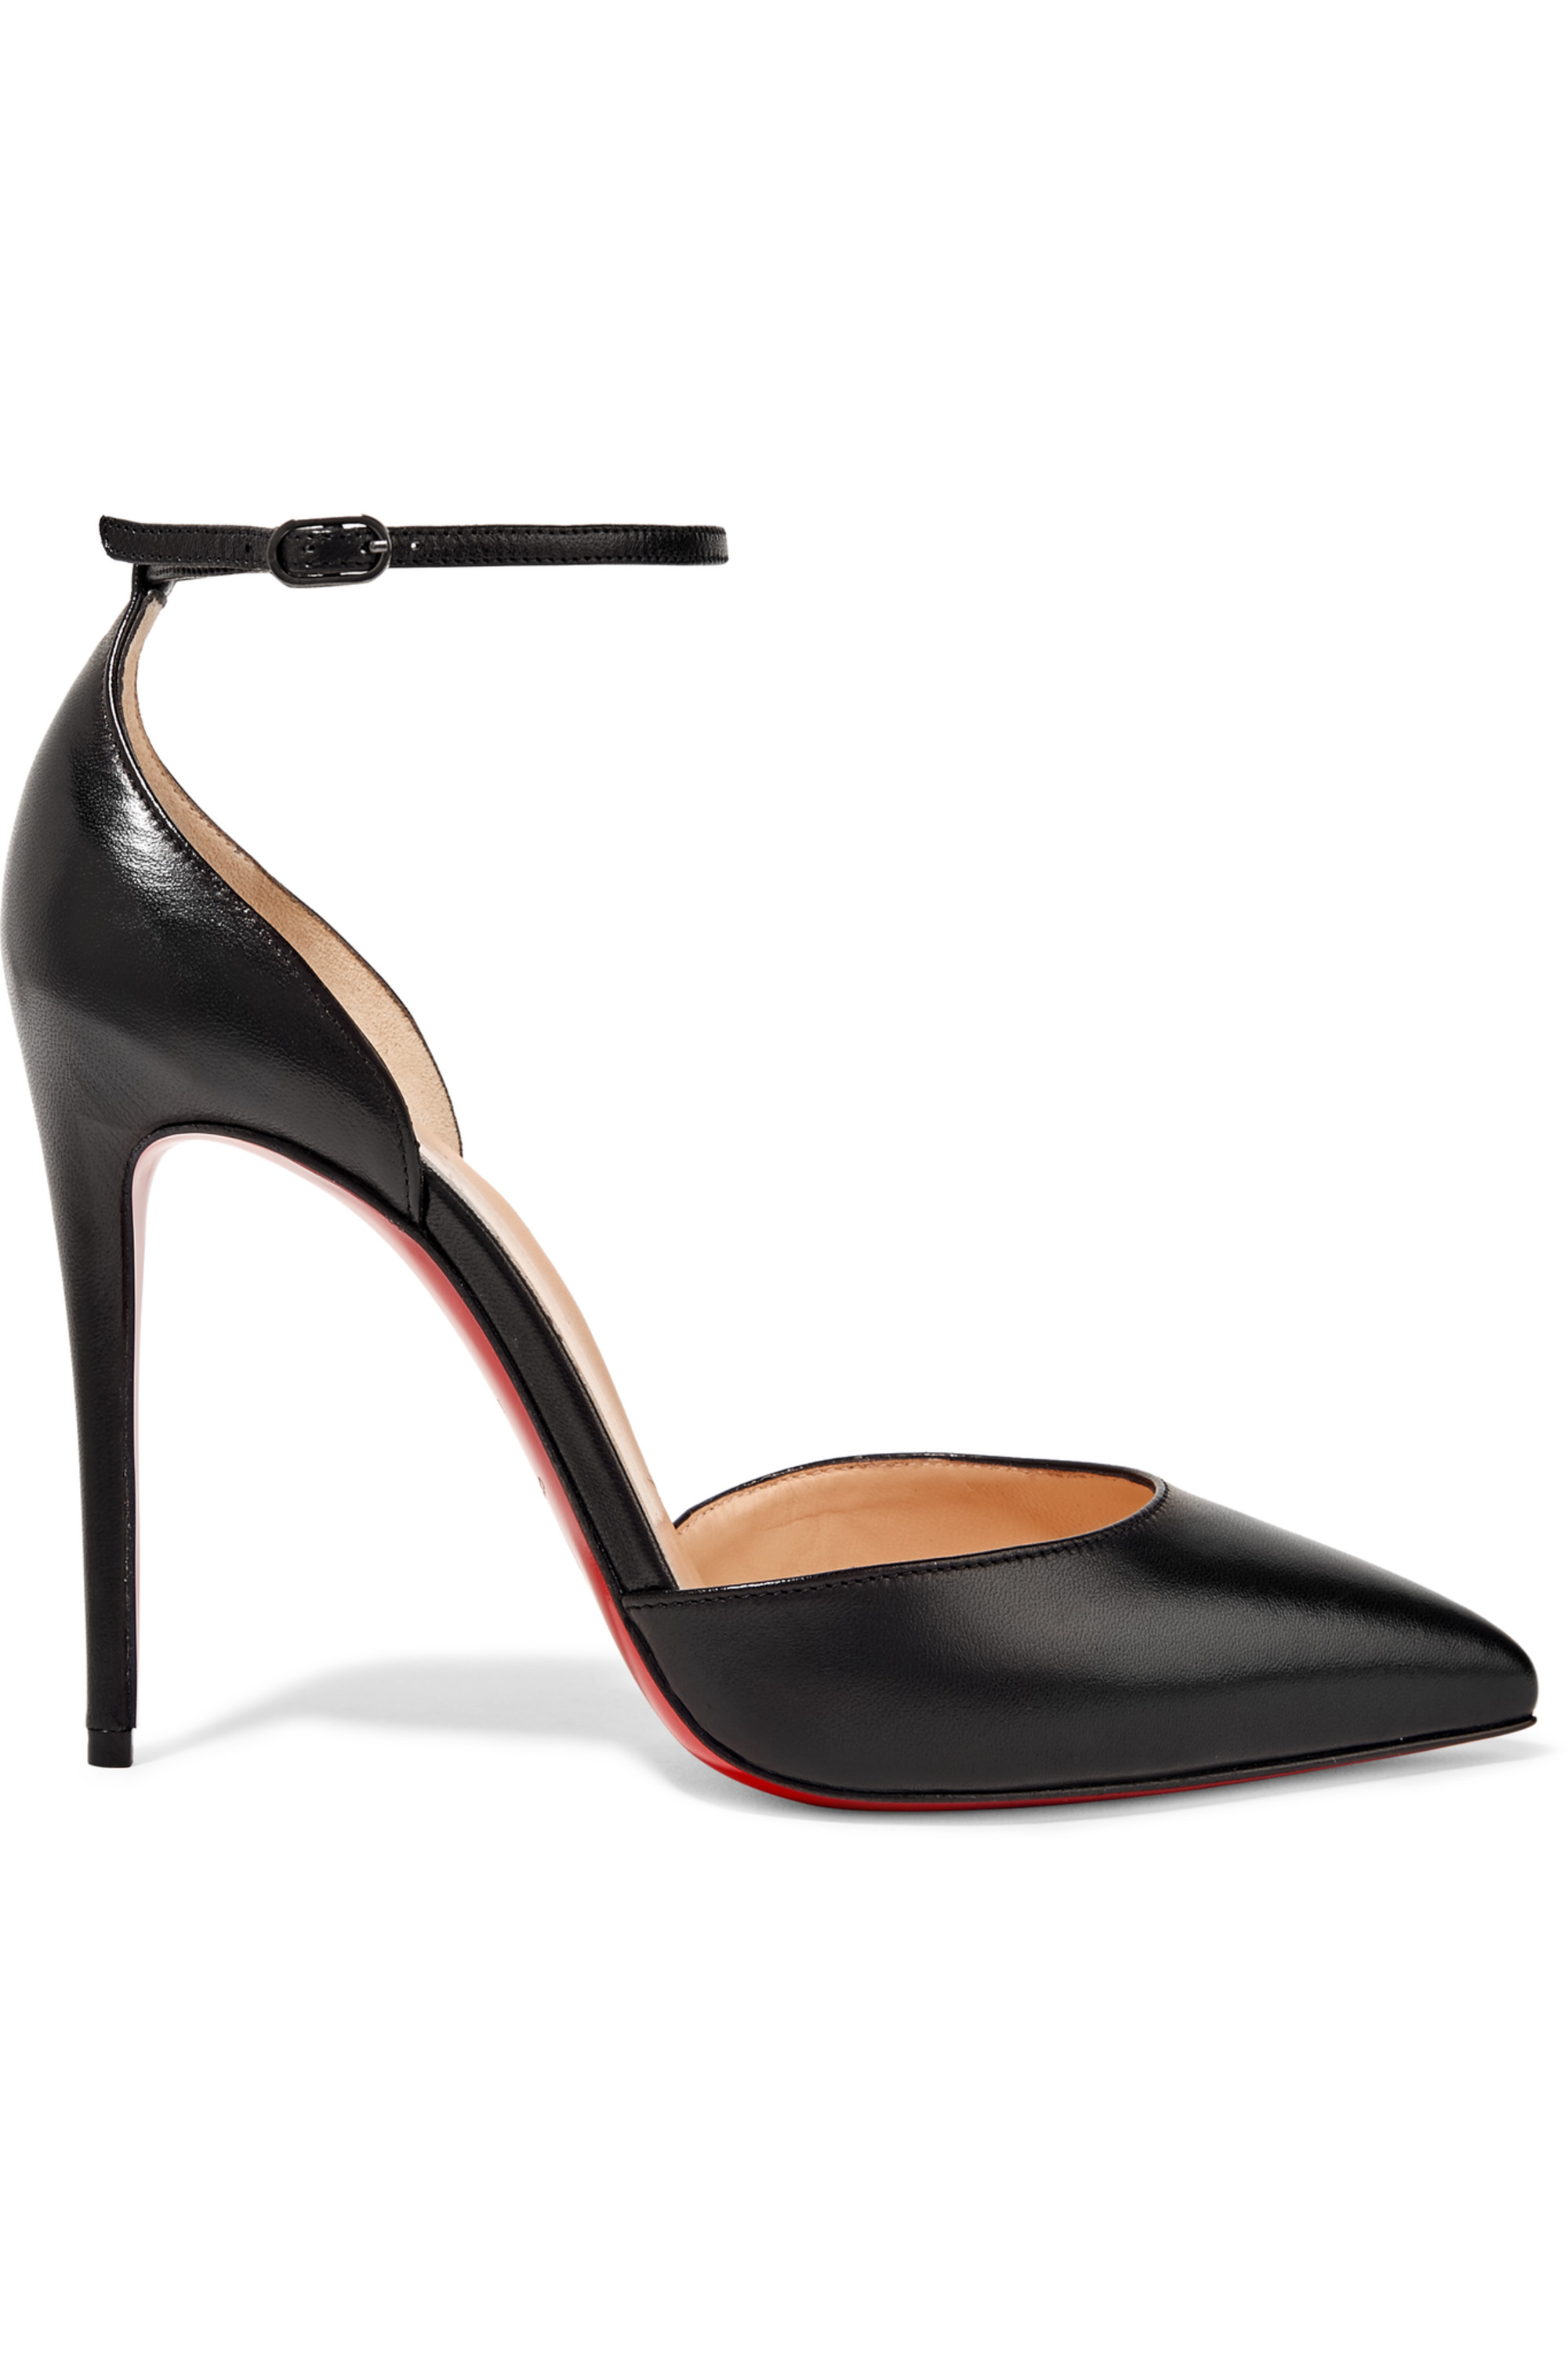 Christian Louboutin Uptown 100 leather pumps